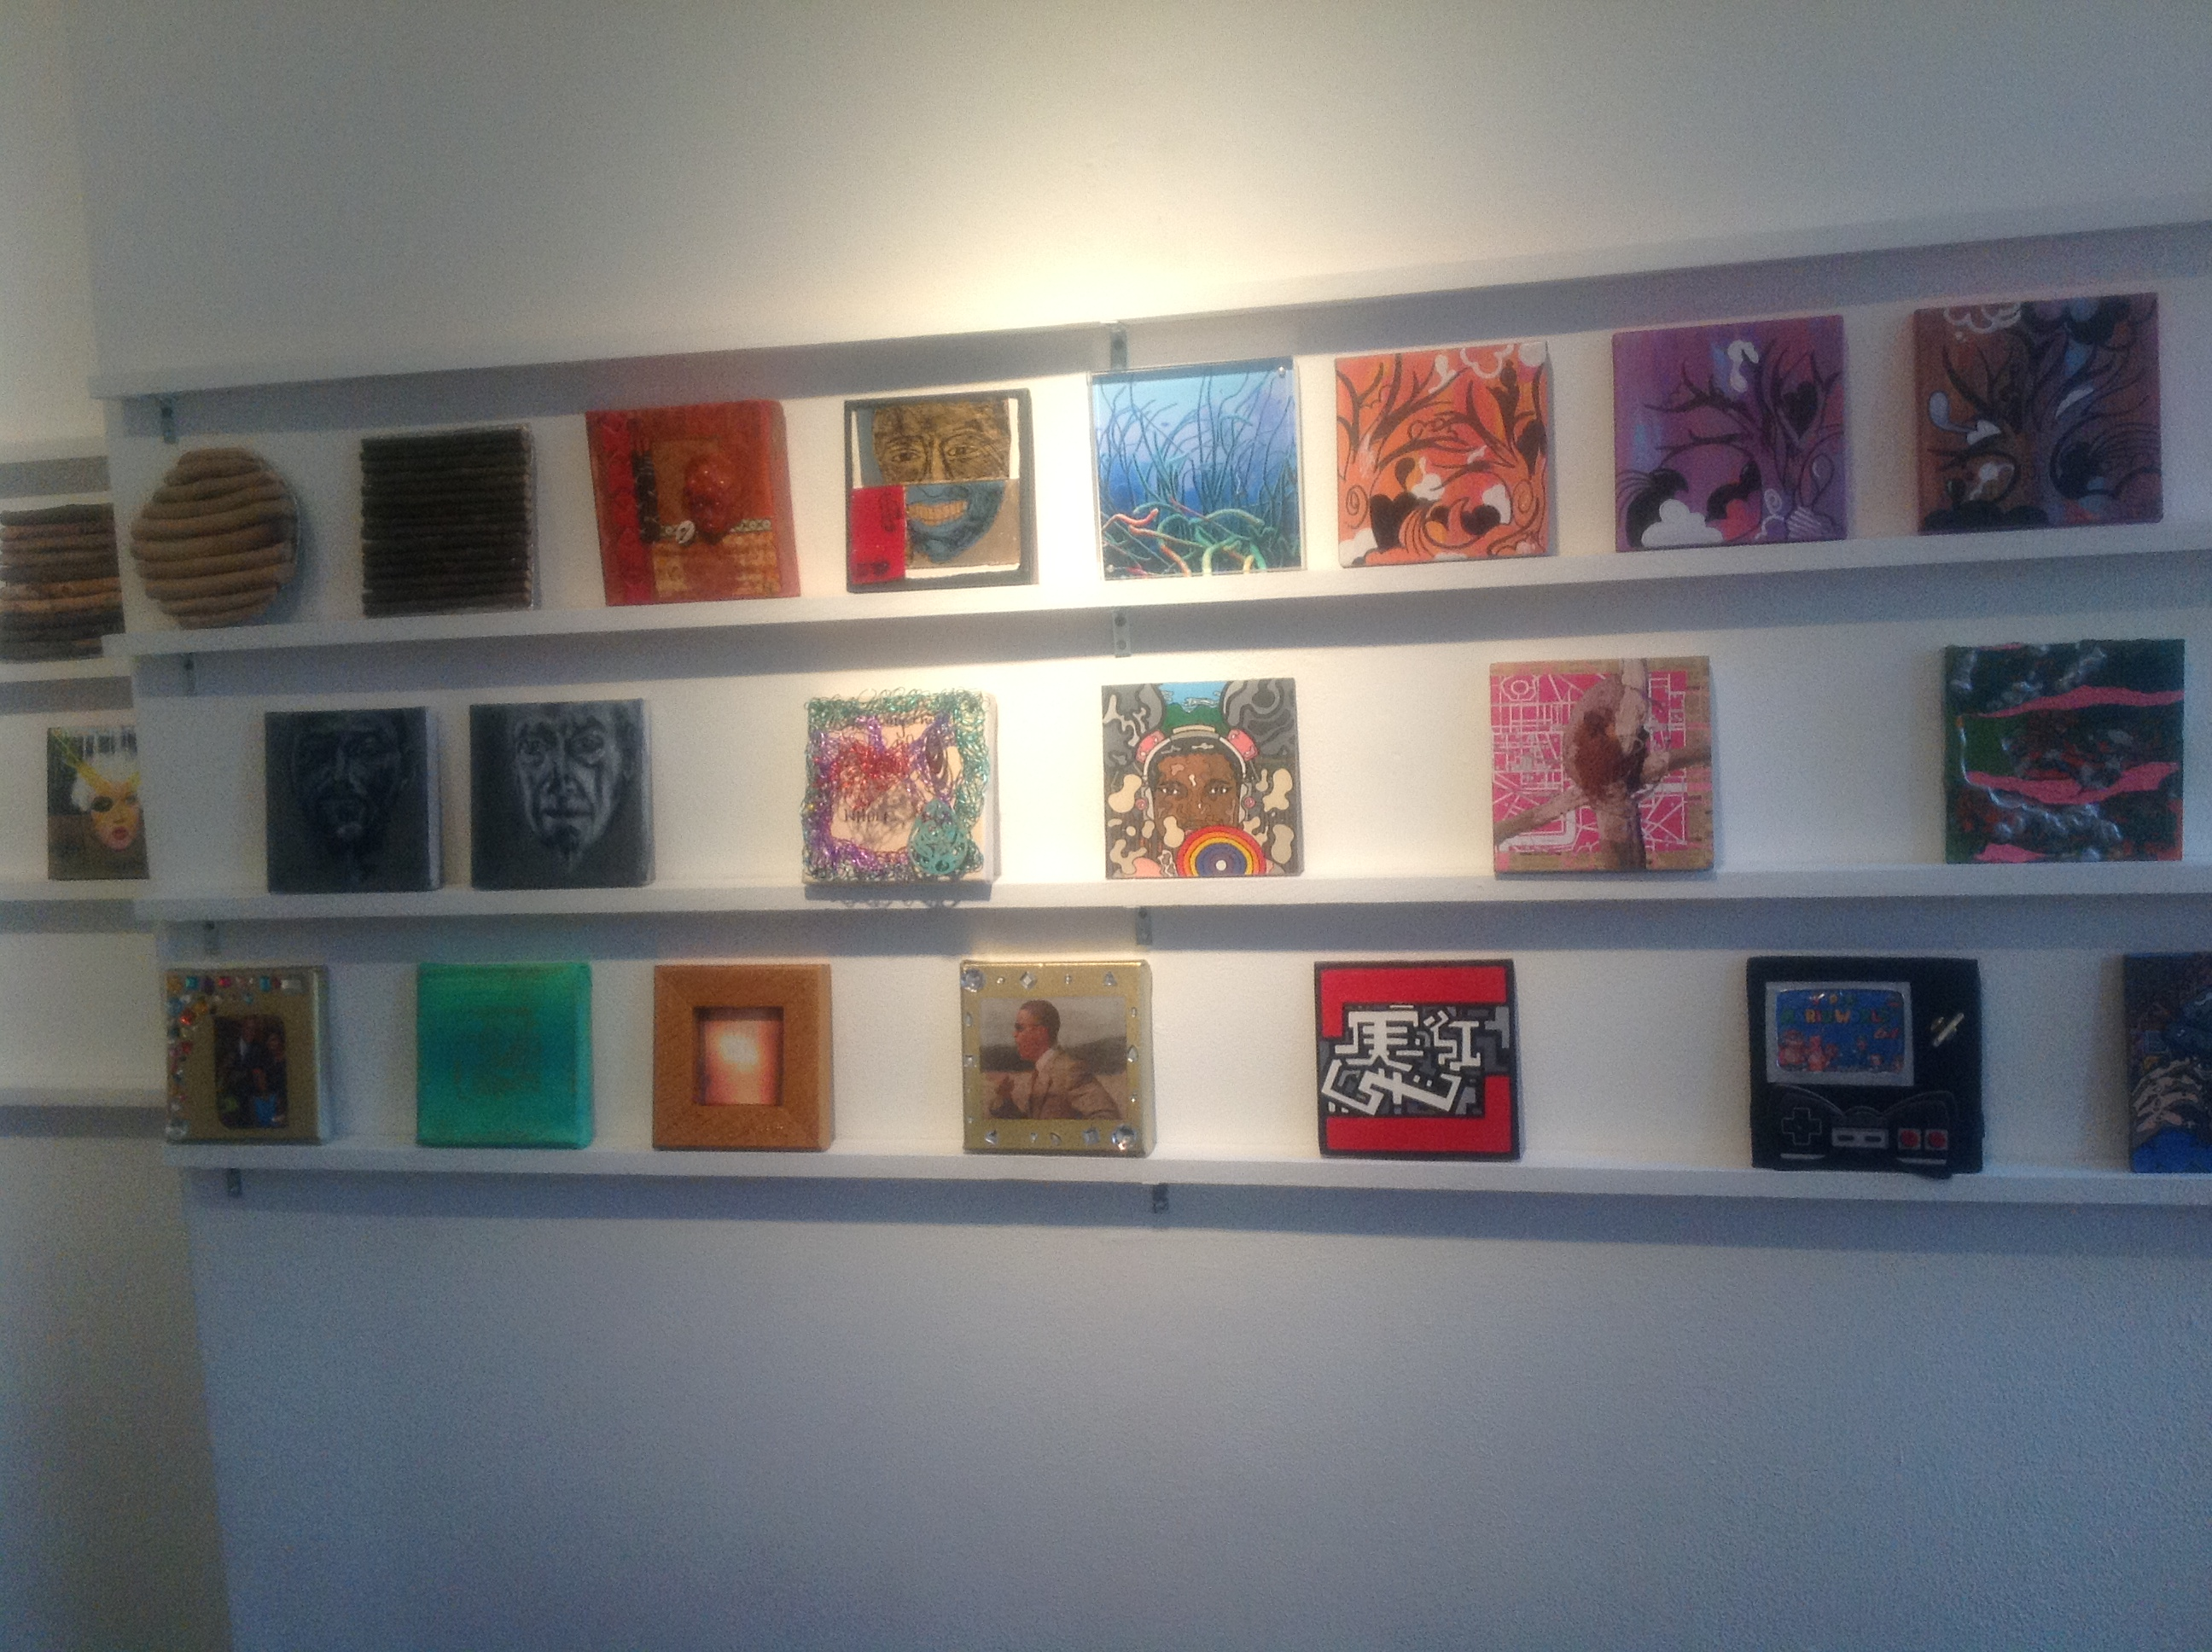 6X6: A Group Art Exhibition April 26, 2013 - May 10, 2013